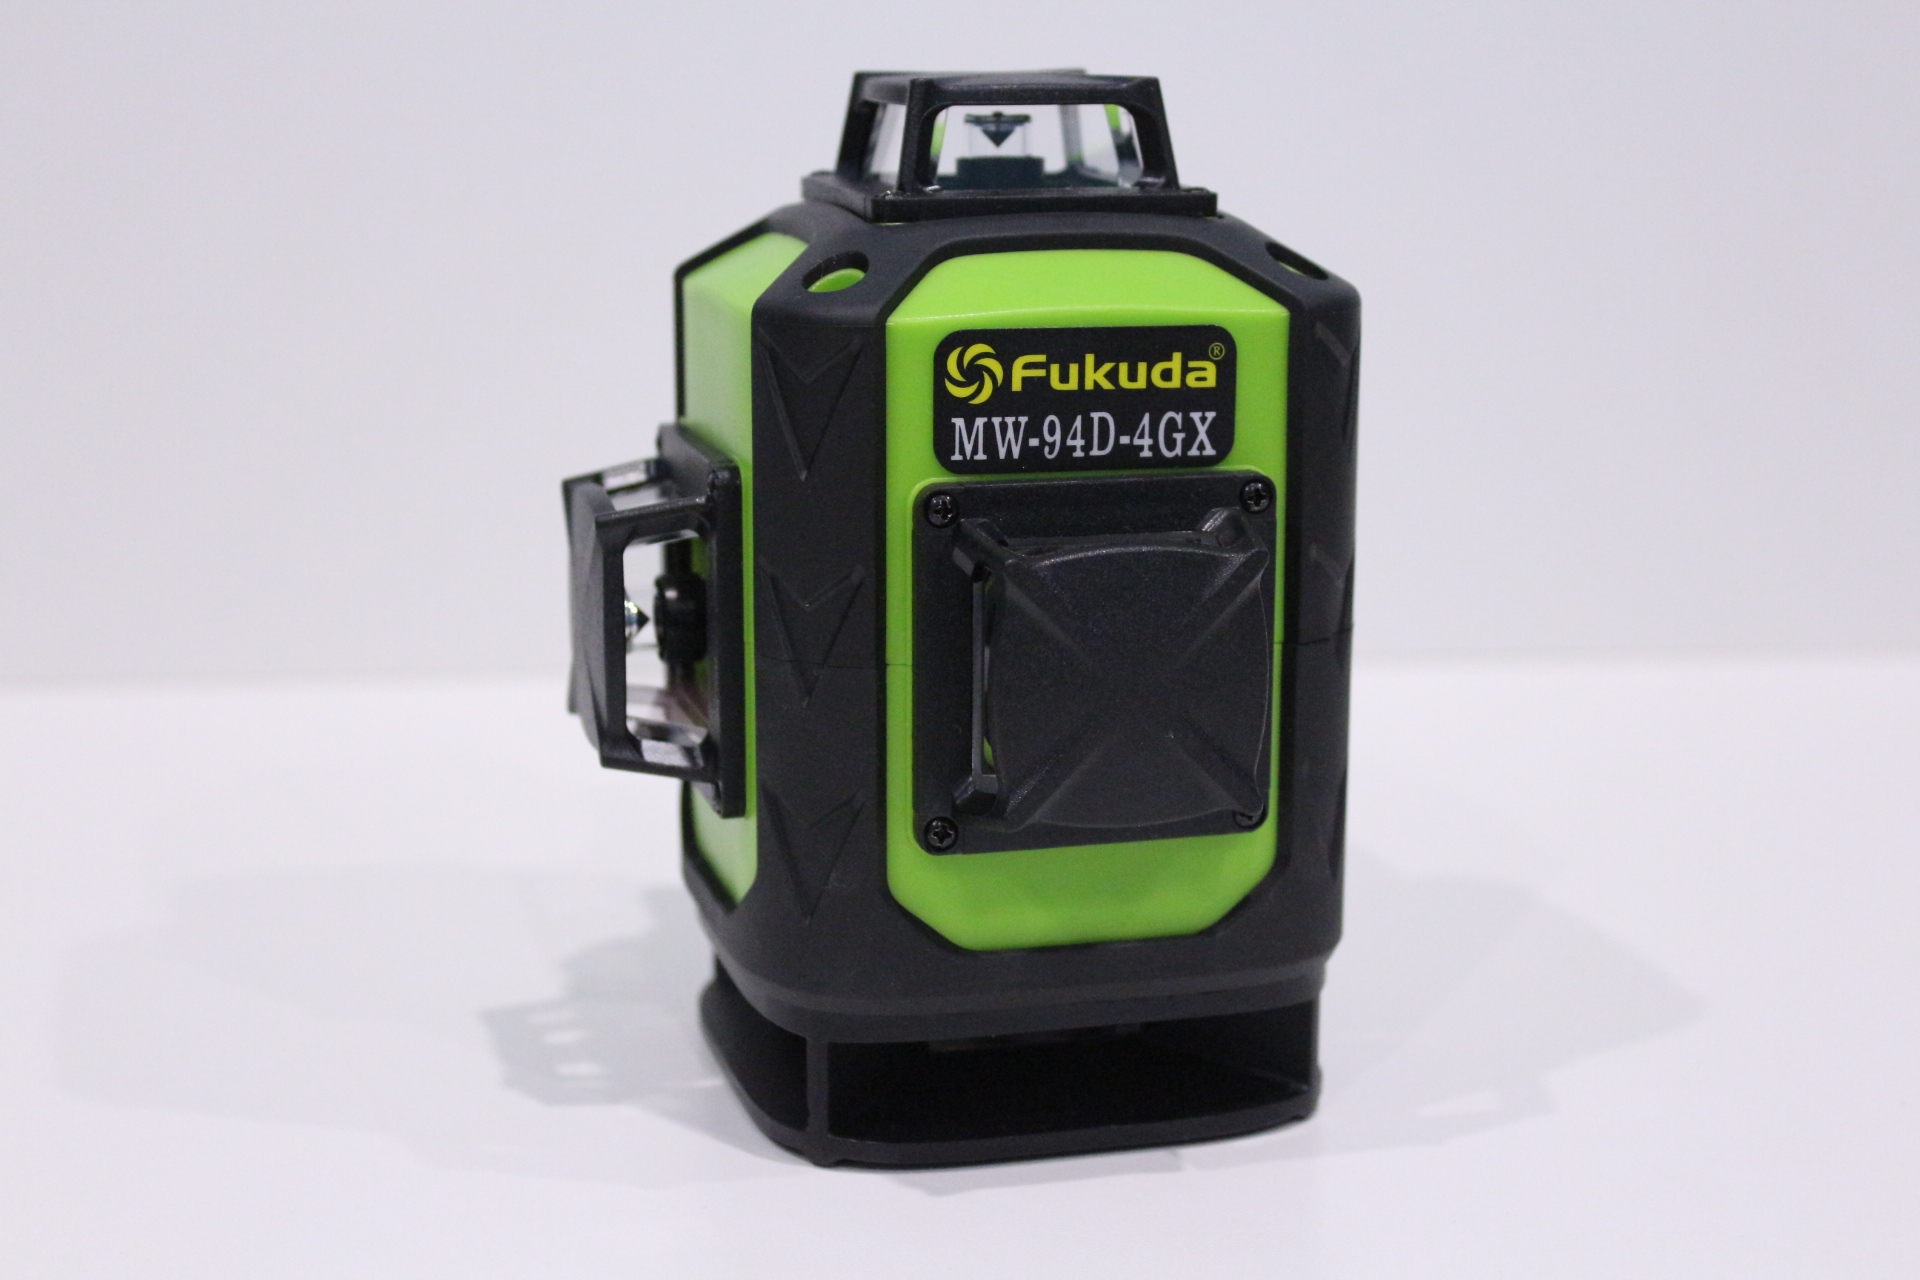 Appearance of the laser level FUKUDA MW-94D-4GX.